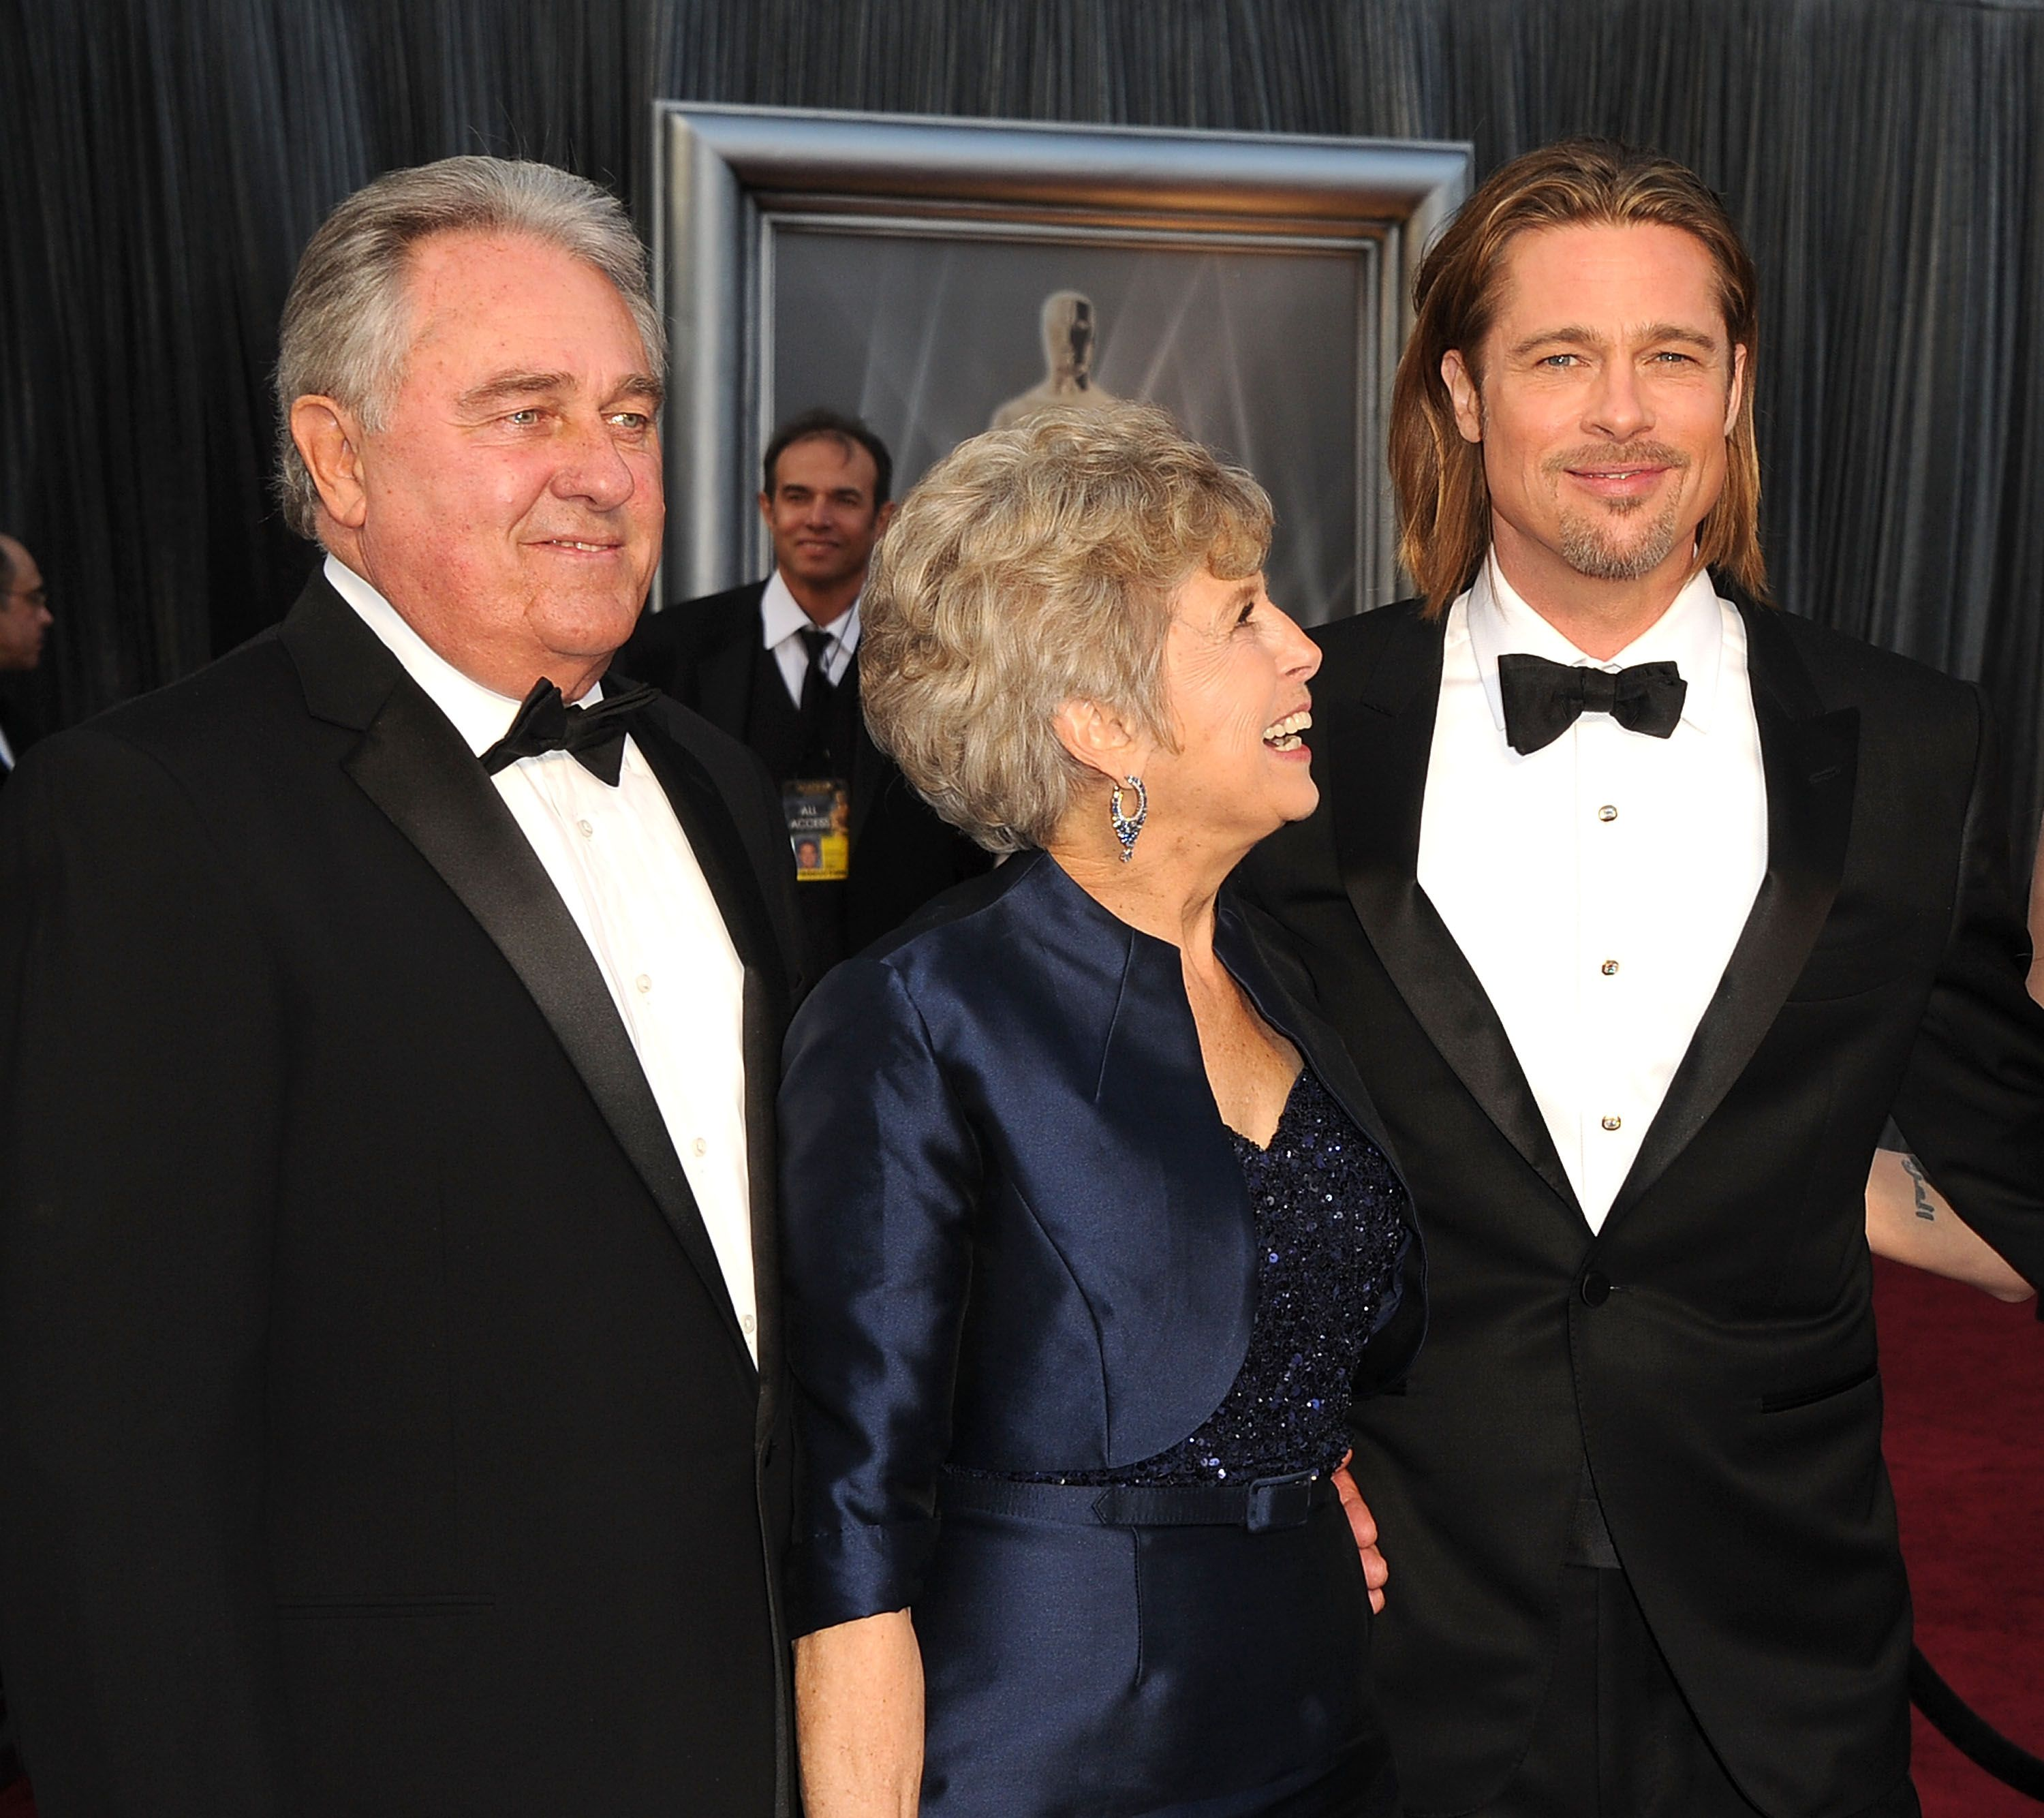 Bill Pitt, Jane Pitt and Brad Pitt at the 84th Annual Academy Awards on February 26, 2012 in Hollywood, California   Photo: Getty Images